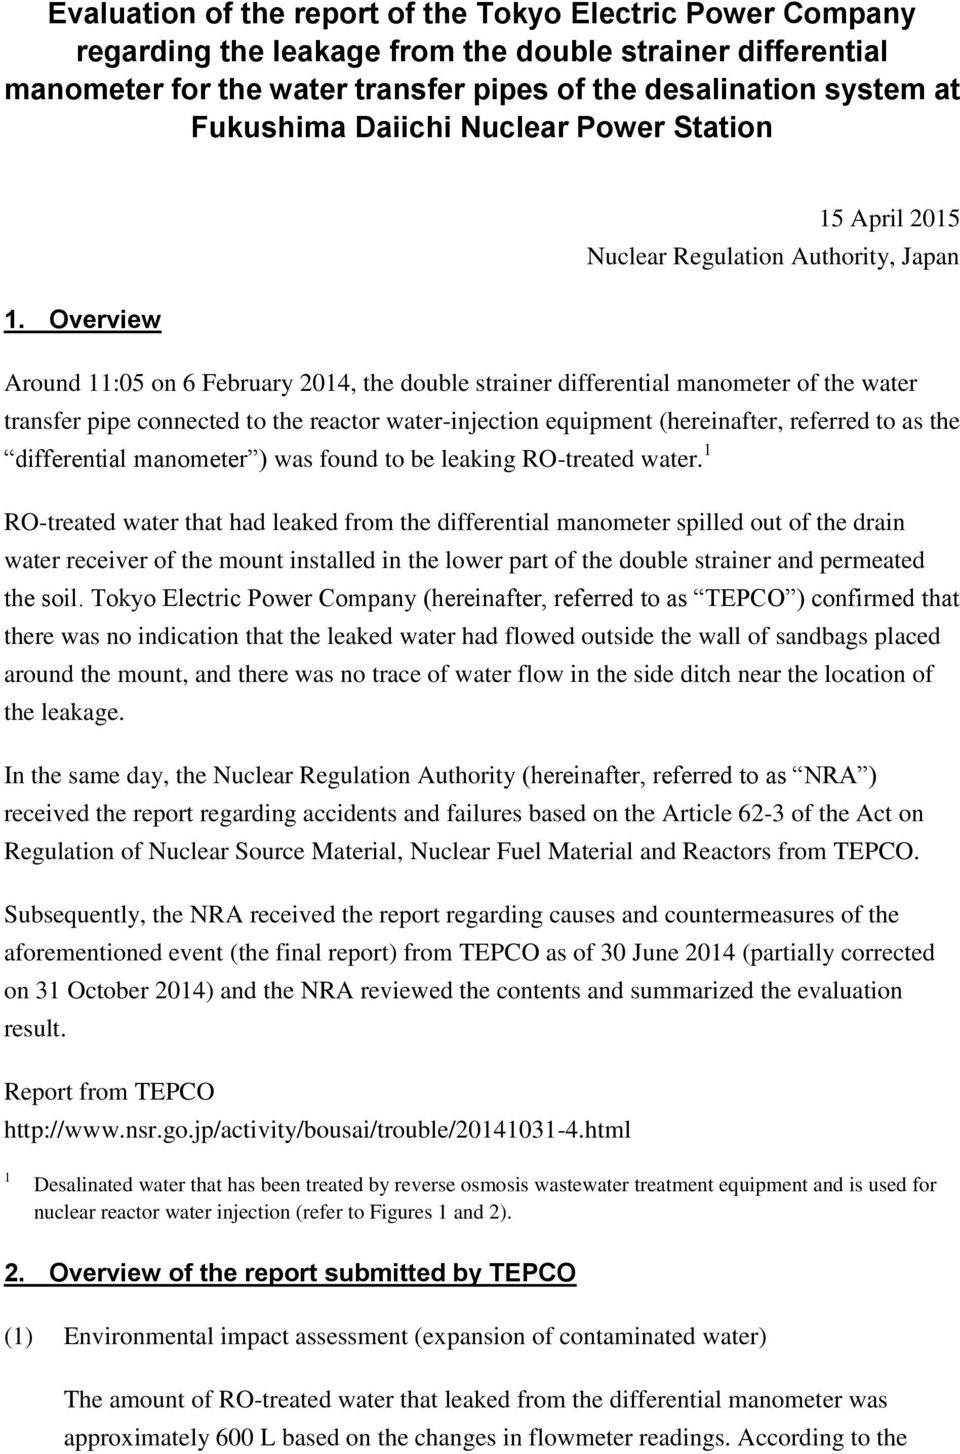 Overview 15 April 2015 Nuclear Regulation Authority, Japan Around 11:05 on 6 February 2014, the double strainer differential manometer of the water transfer pipe connected to the reactor